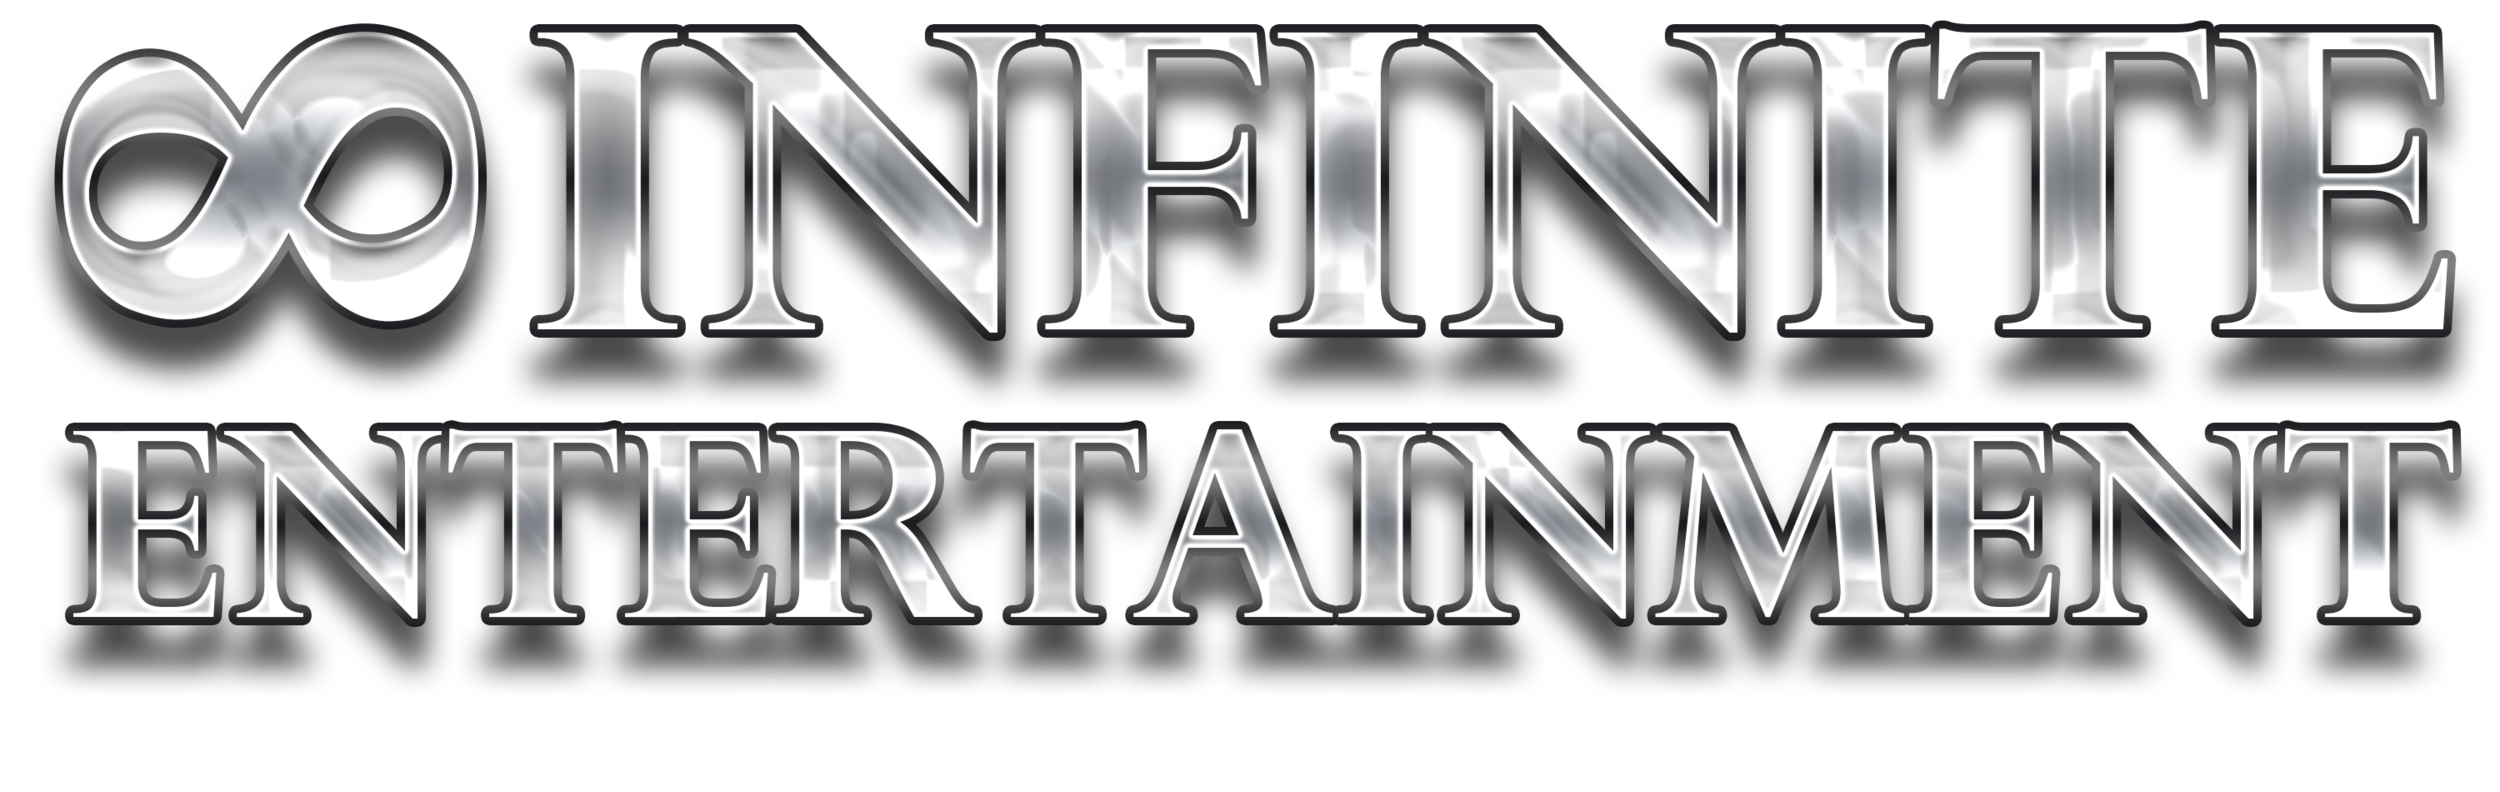 Infinite Entertainment large.png